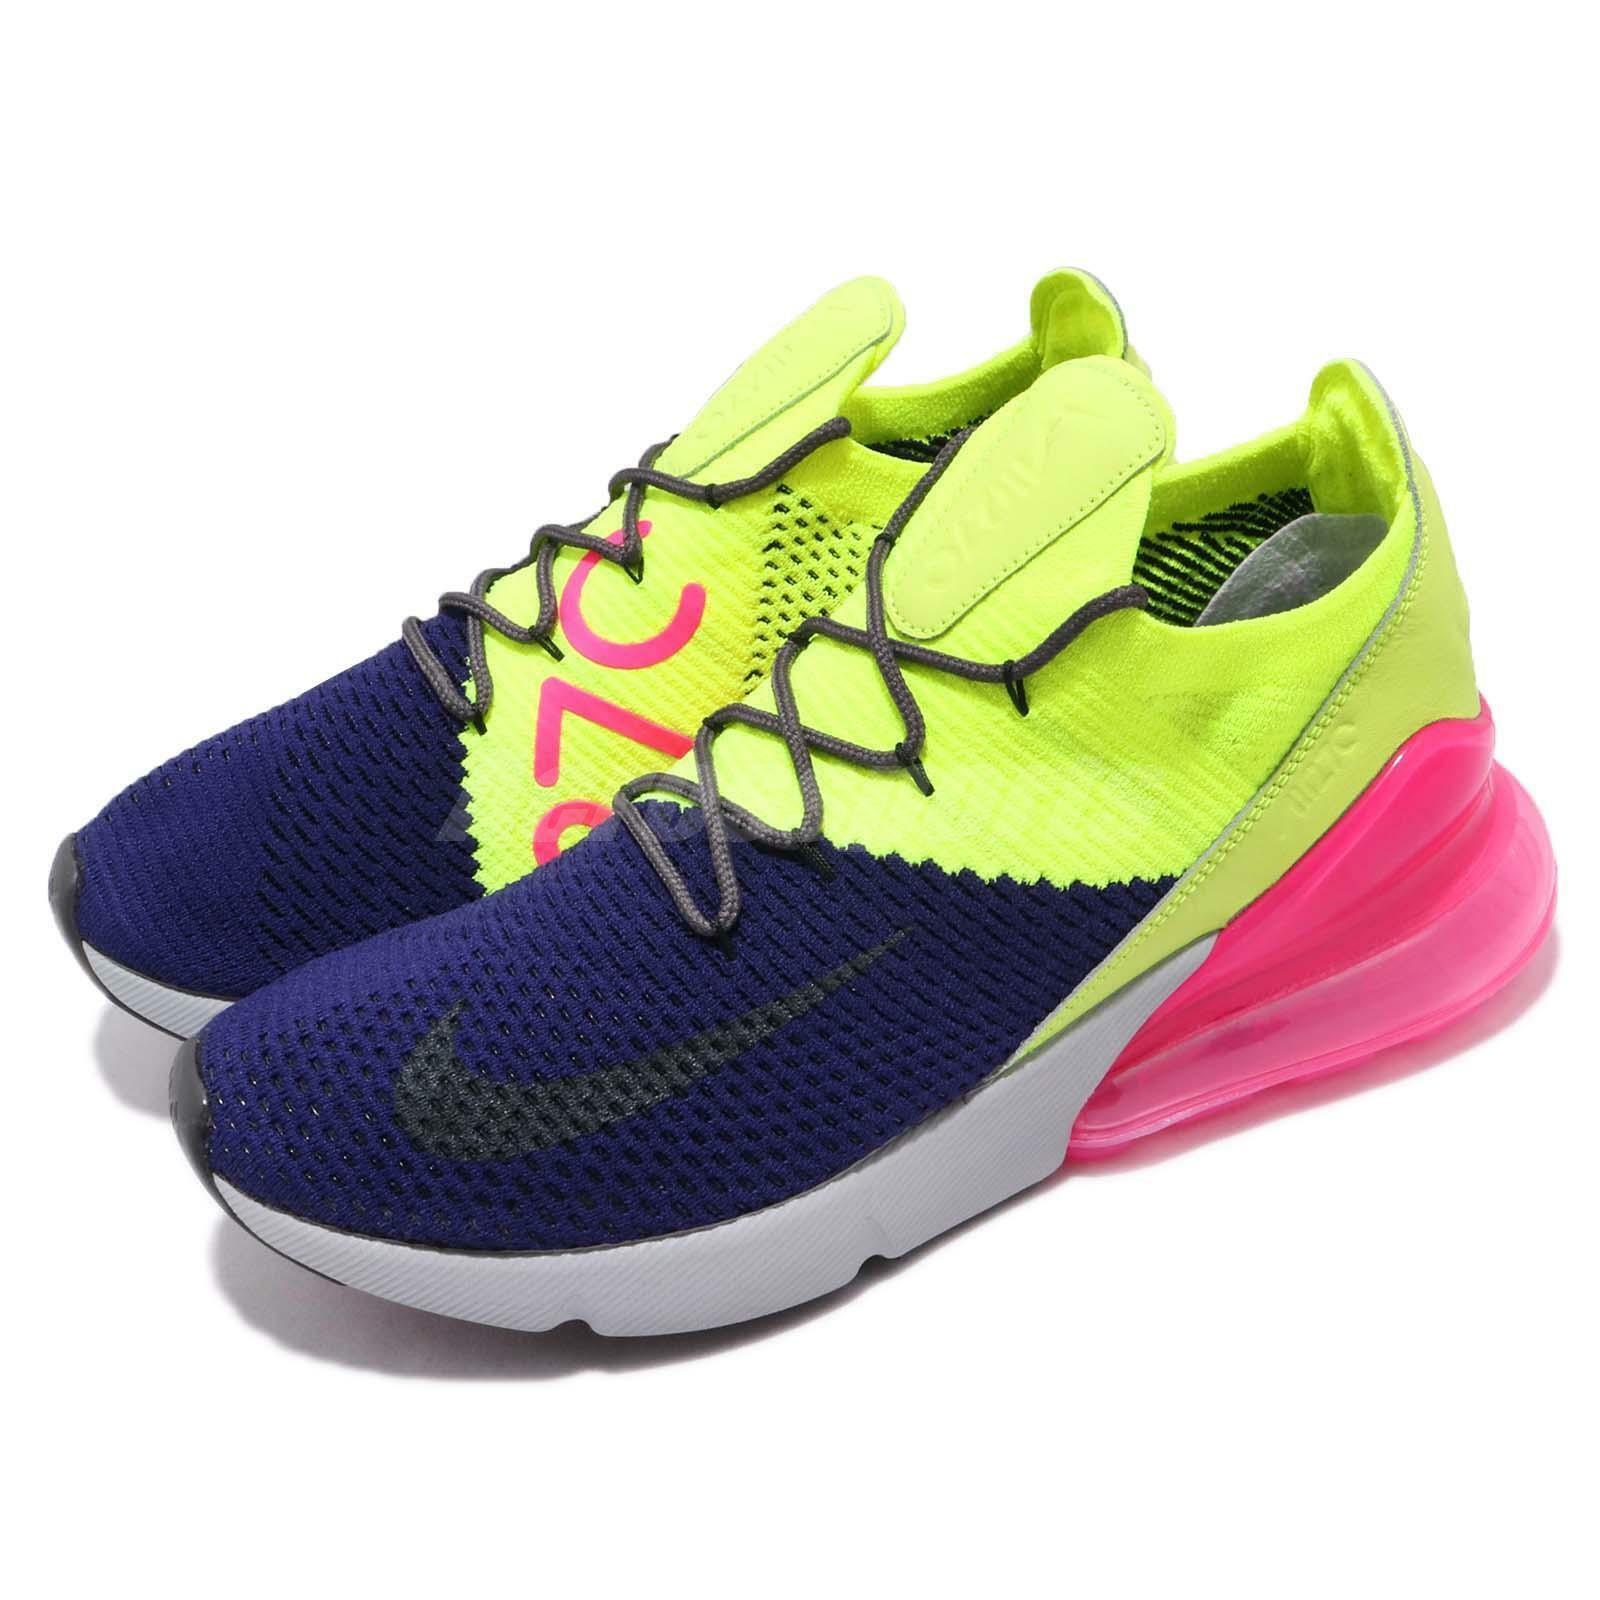 8ab4cc57d0 Nike Air Max 270 Flyknit Multi-color Purple Men Running shoes Sneaker  AO1023-501